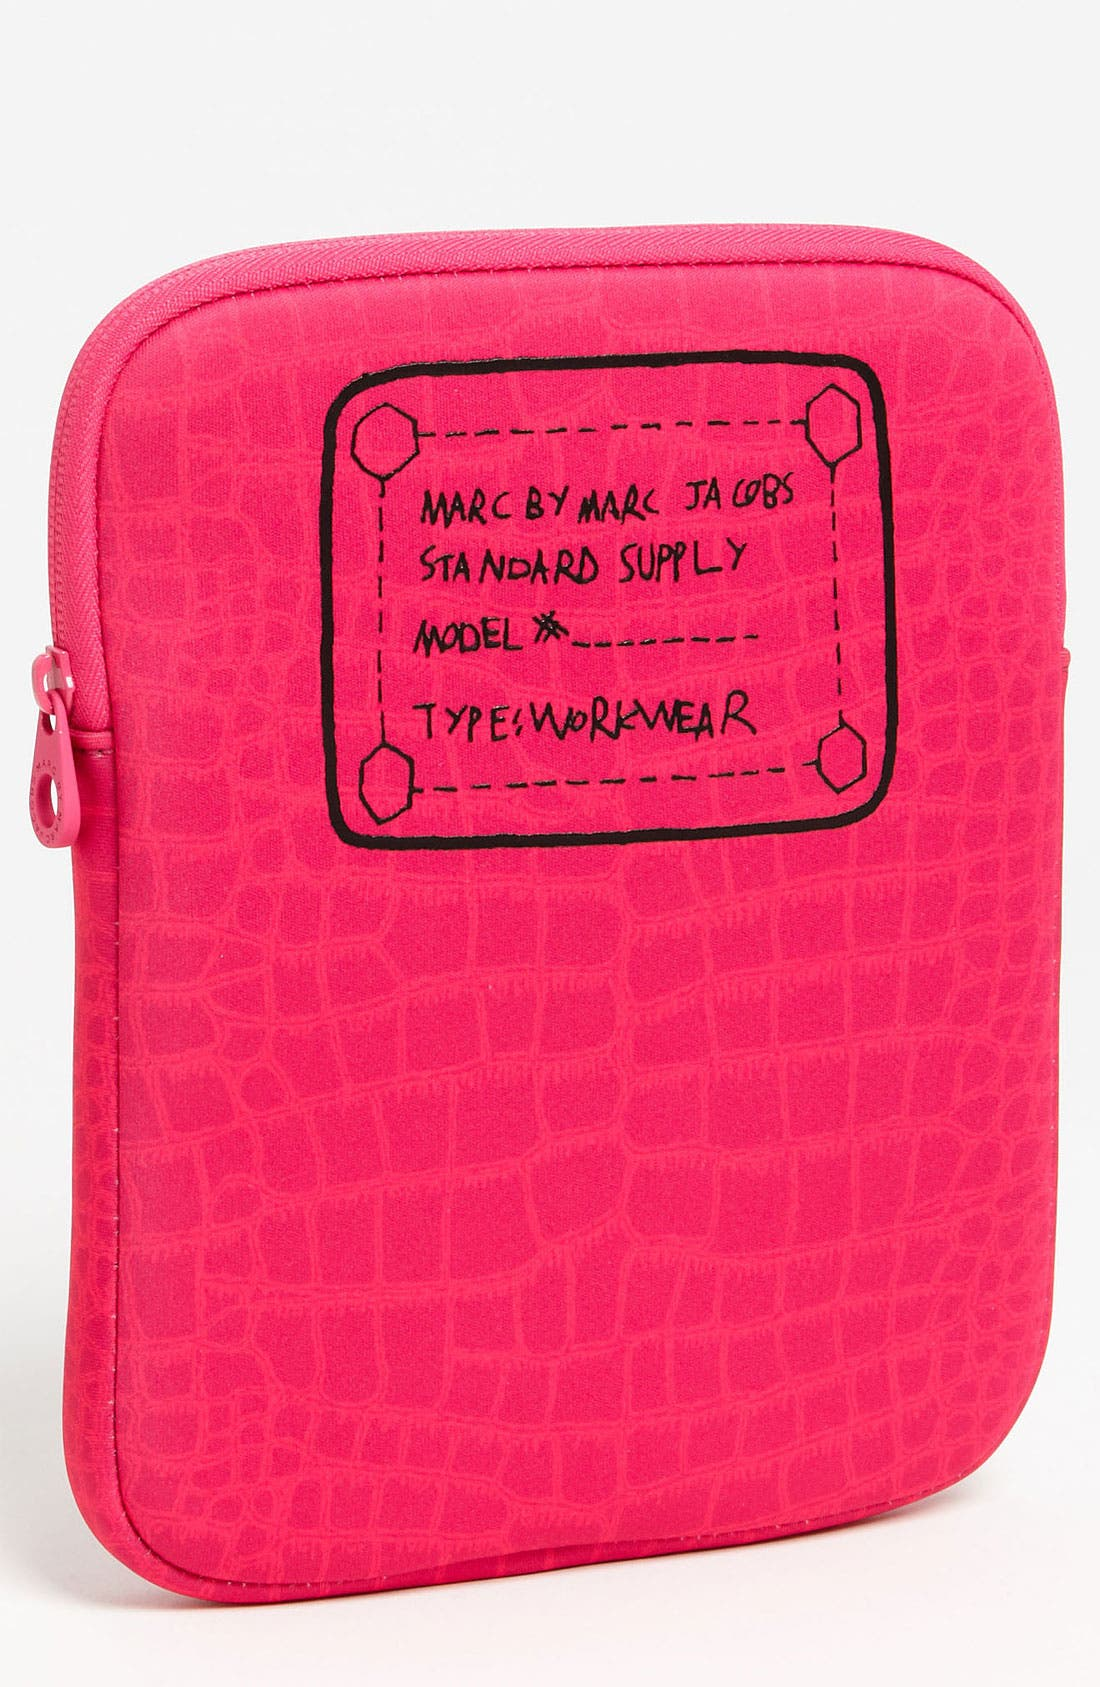 Alternate Image 1 Selected - MARC BY MARC JACOBS 'Trompe l'Oeil' Croc Print Tablet Sleeve